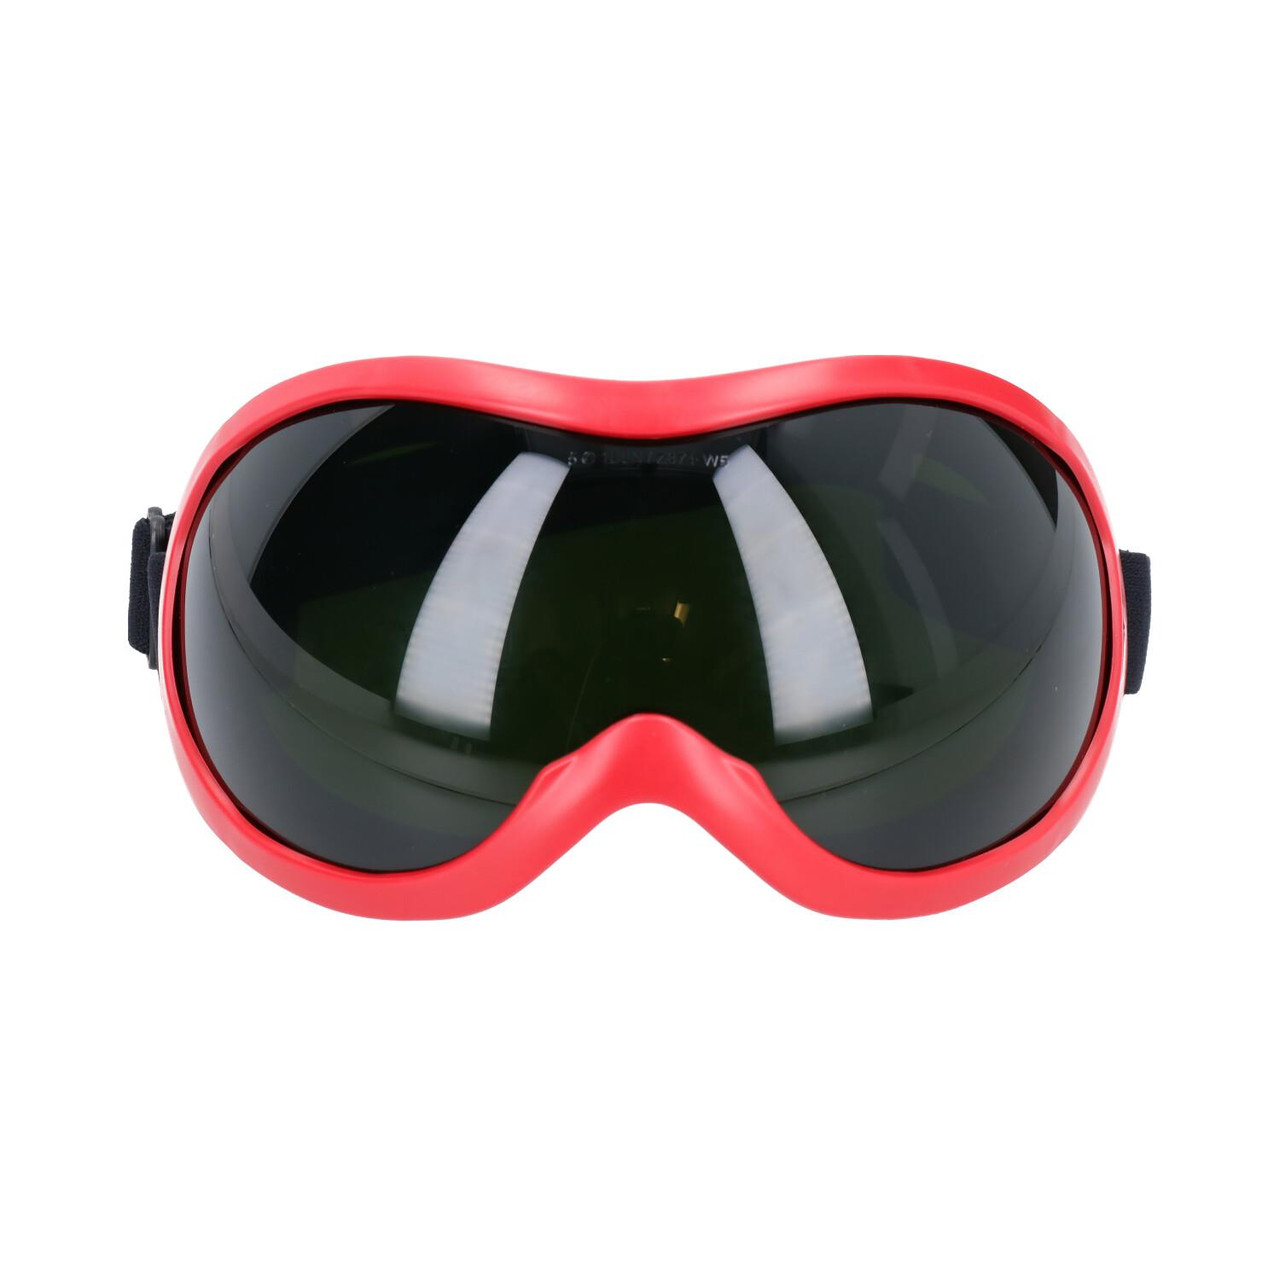 Welding Goggles Glasses Mask Wide Vision Welder Safety Protection Ski Style Ab Tools Online